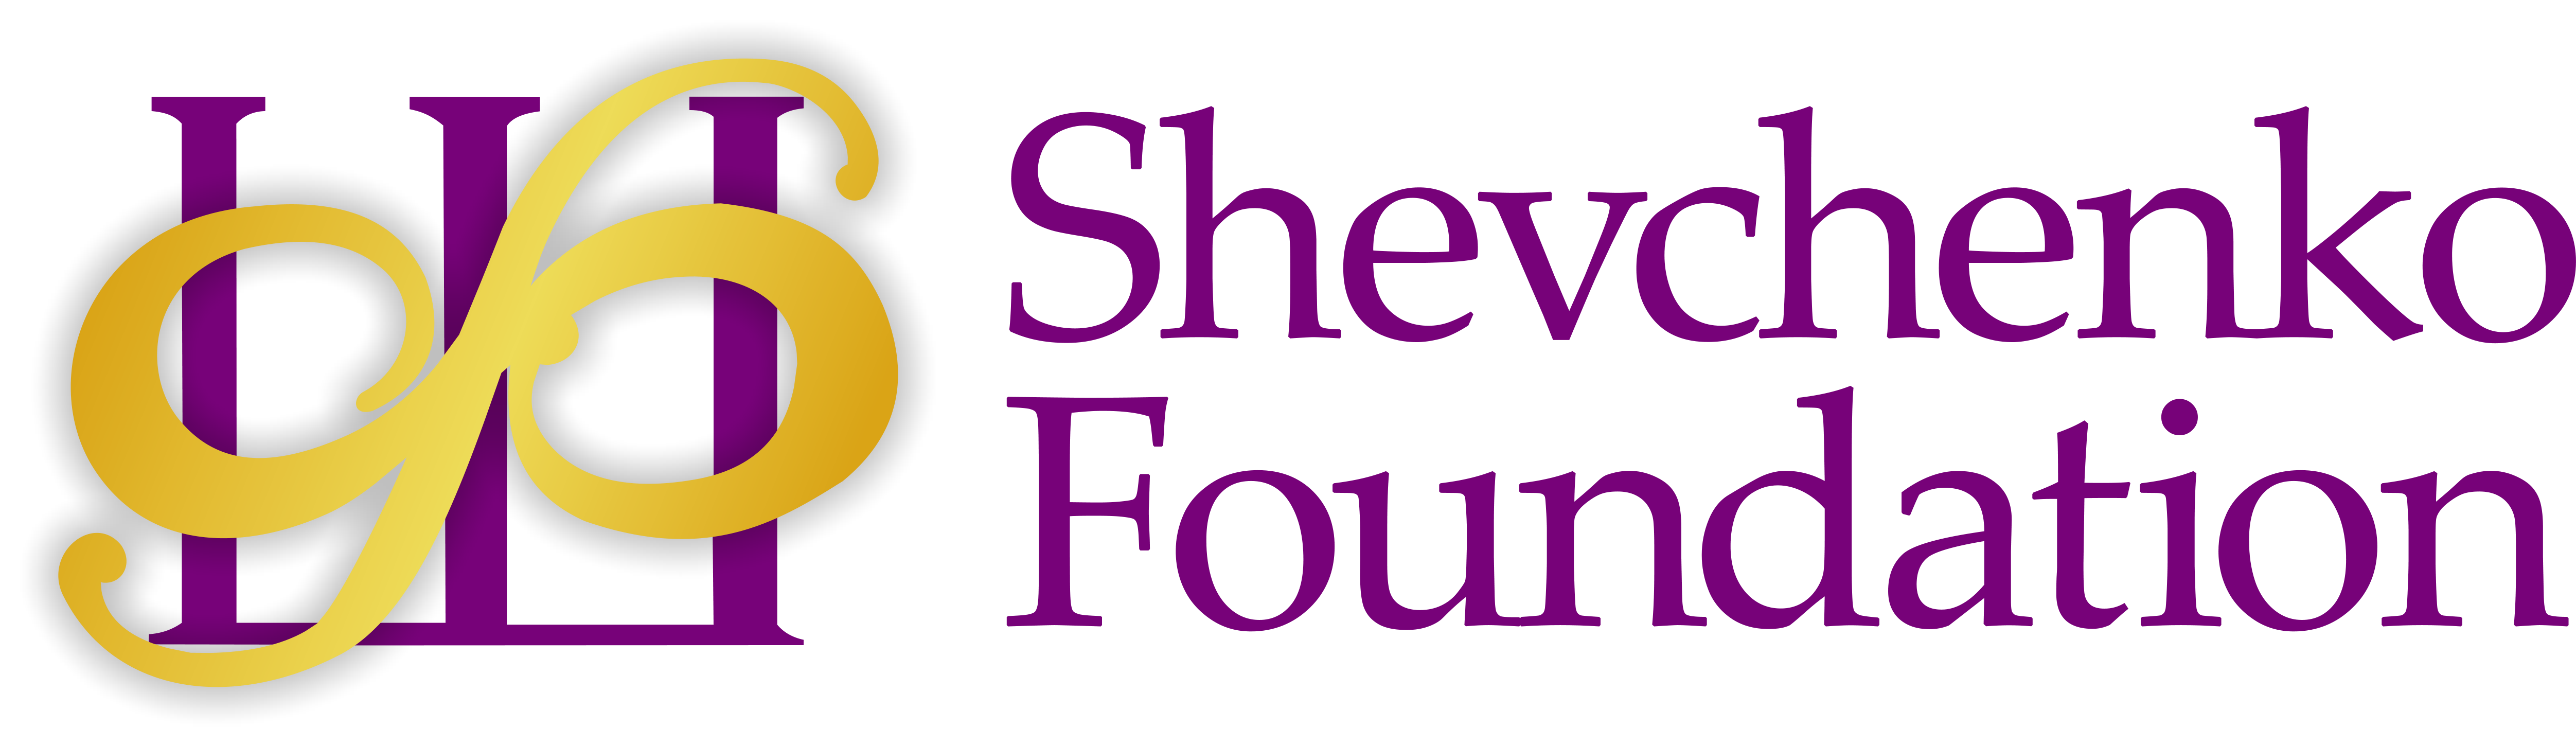 Shevchenko Foundation TRANSPARENT COLOUR